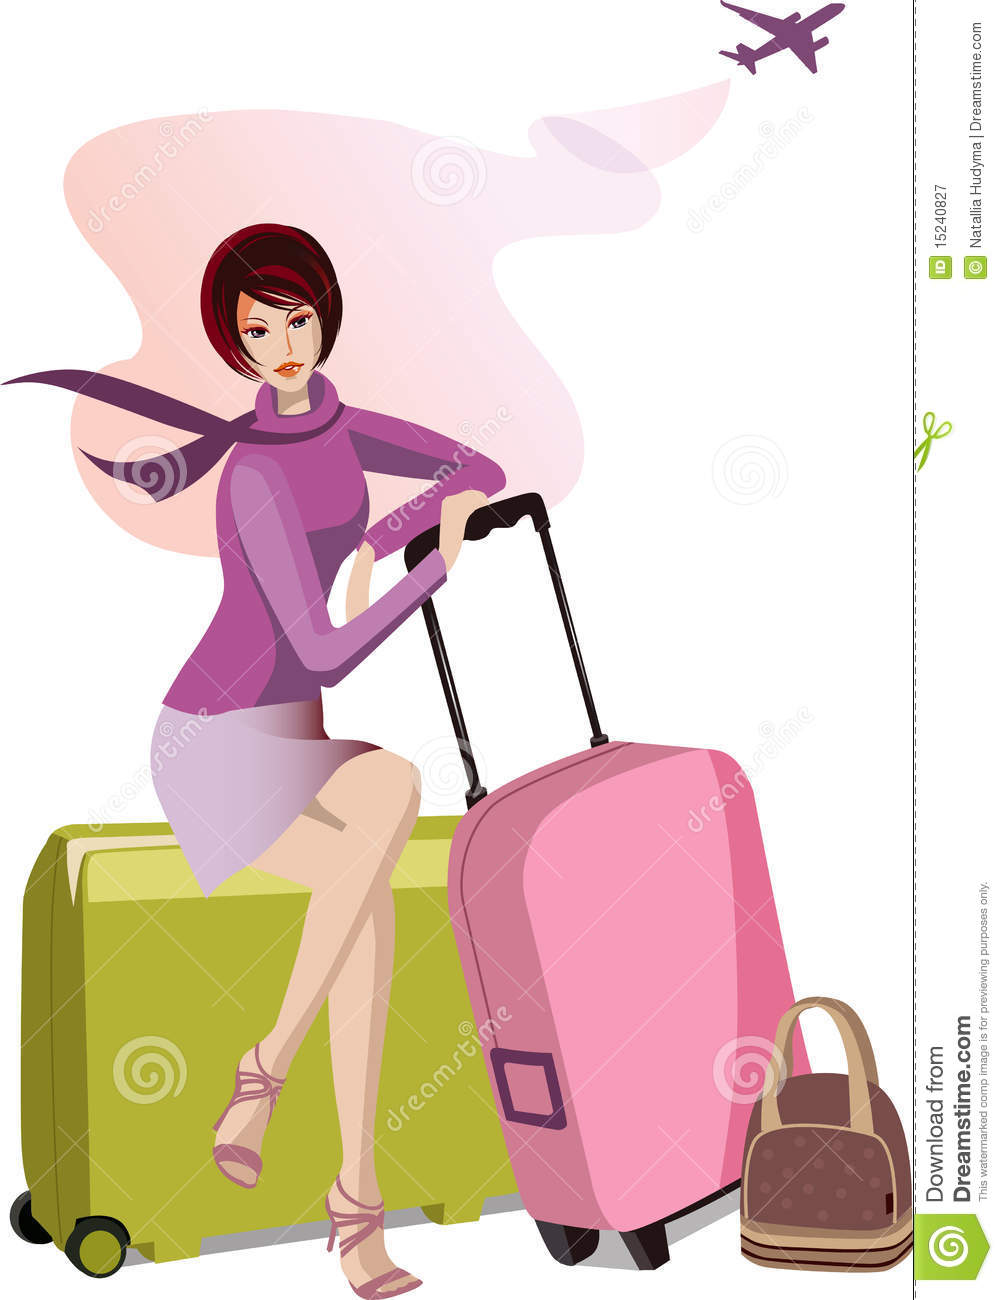 1003x1300 Travel Clipart Images